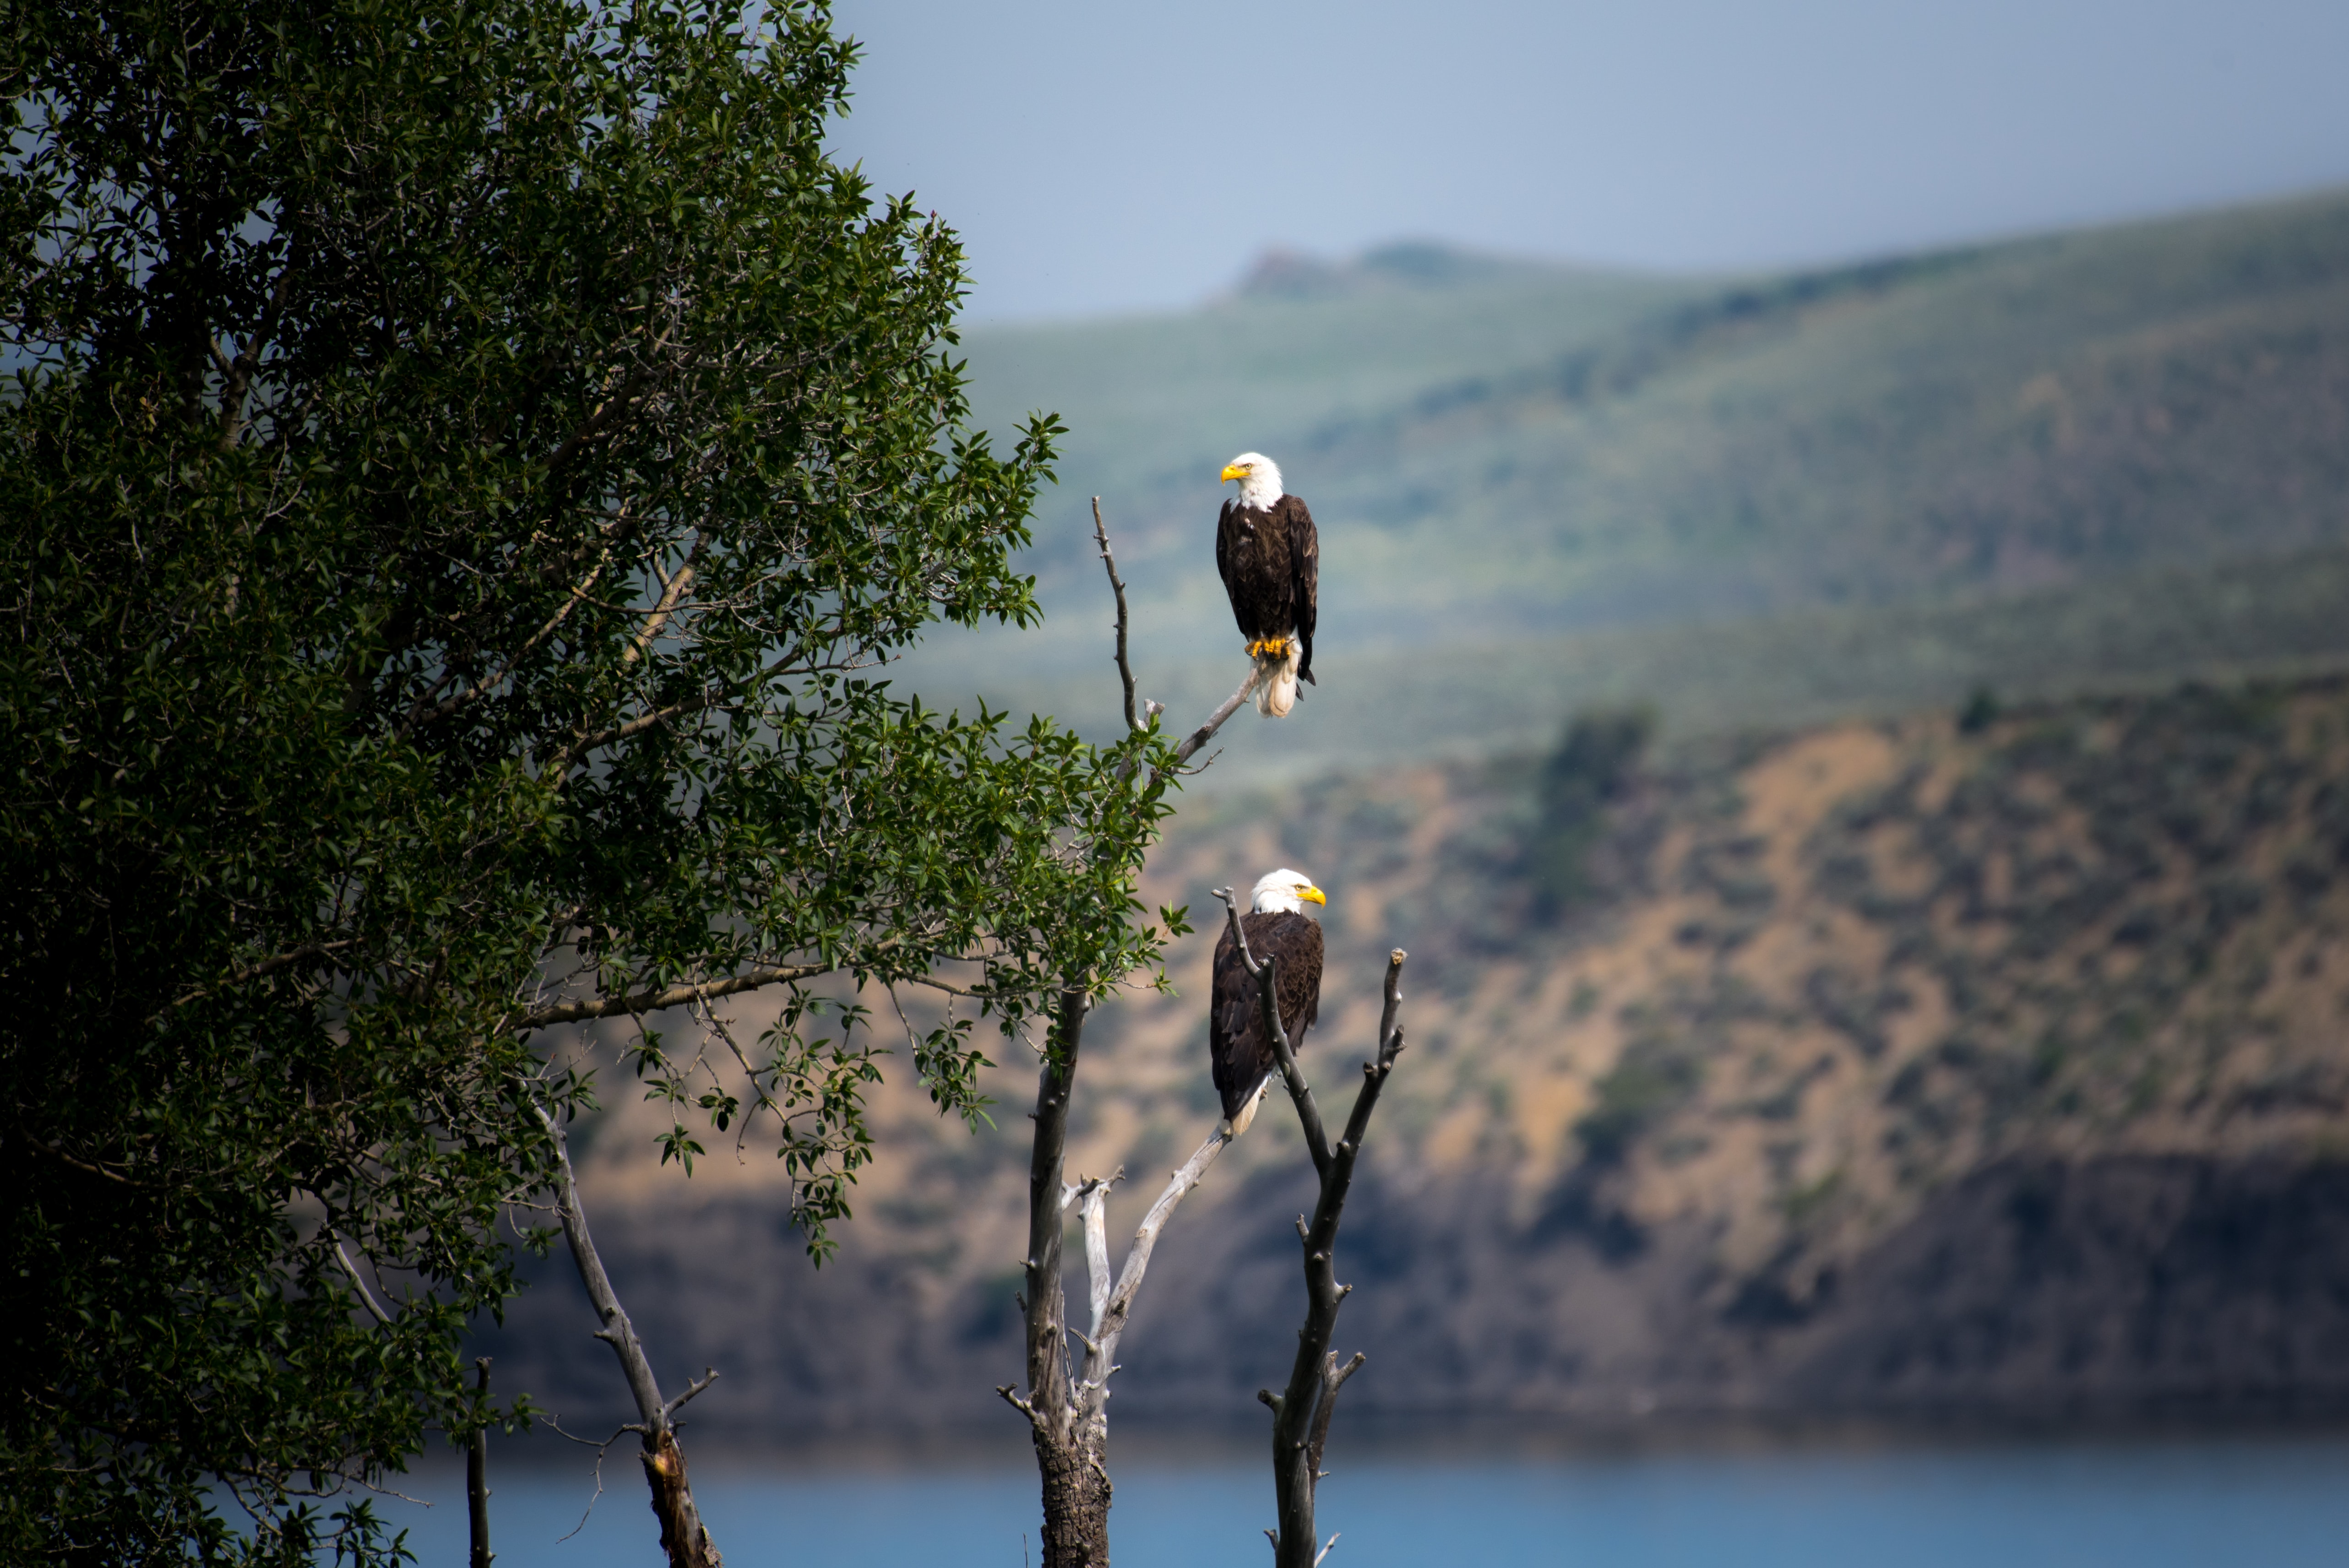 two Bald Eagles perched on gray bare tree branch during daytime